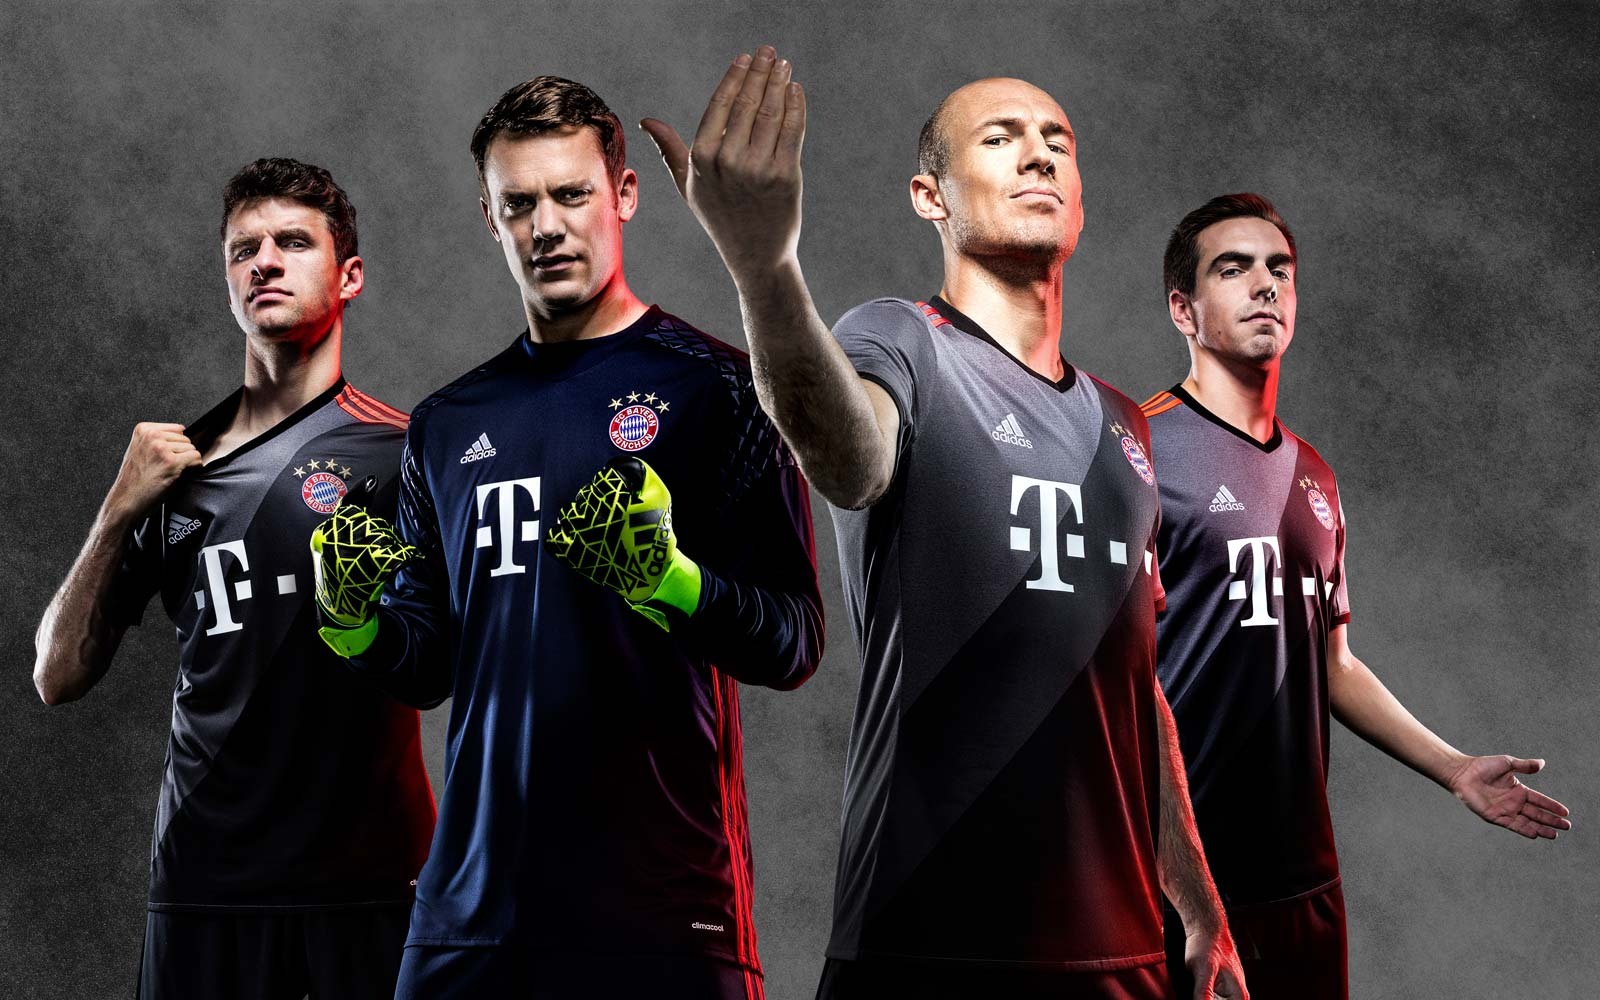 bayern-munich-16-17-away-kit.jpg